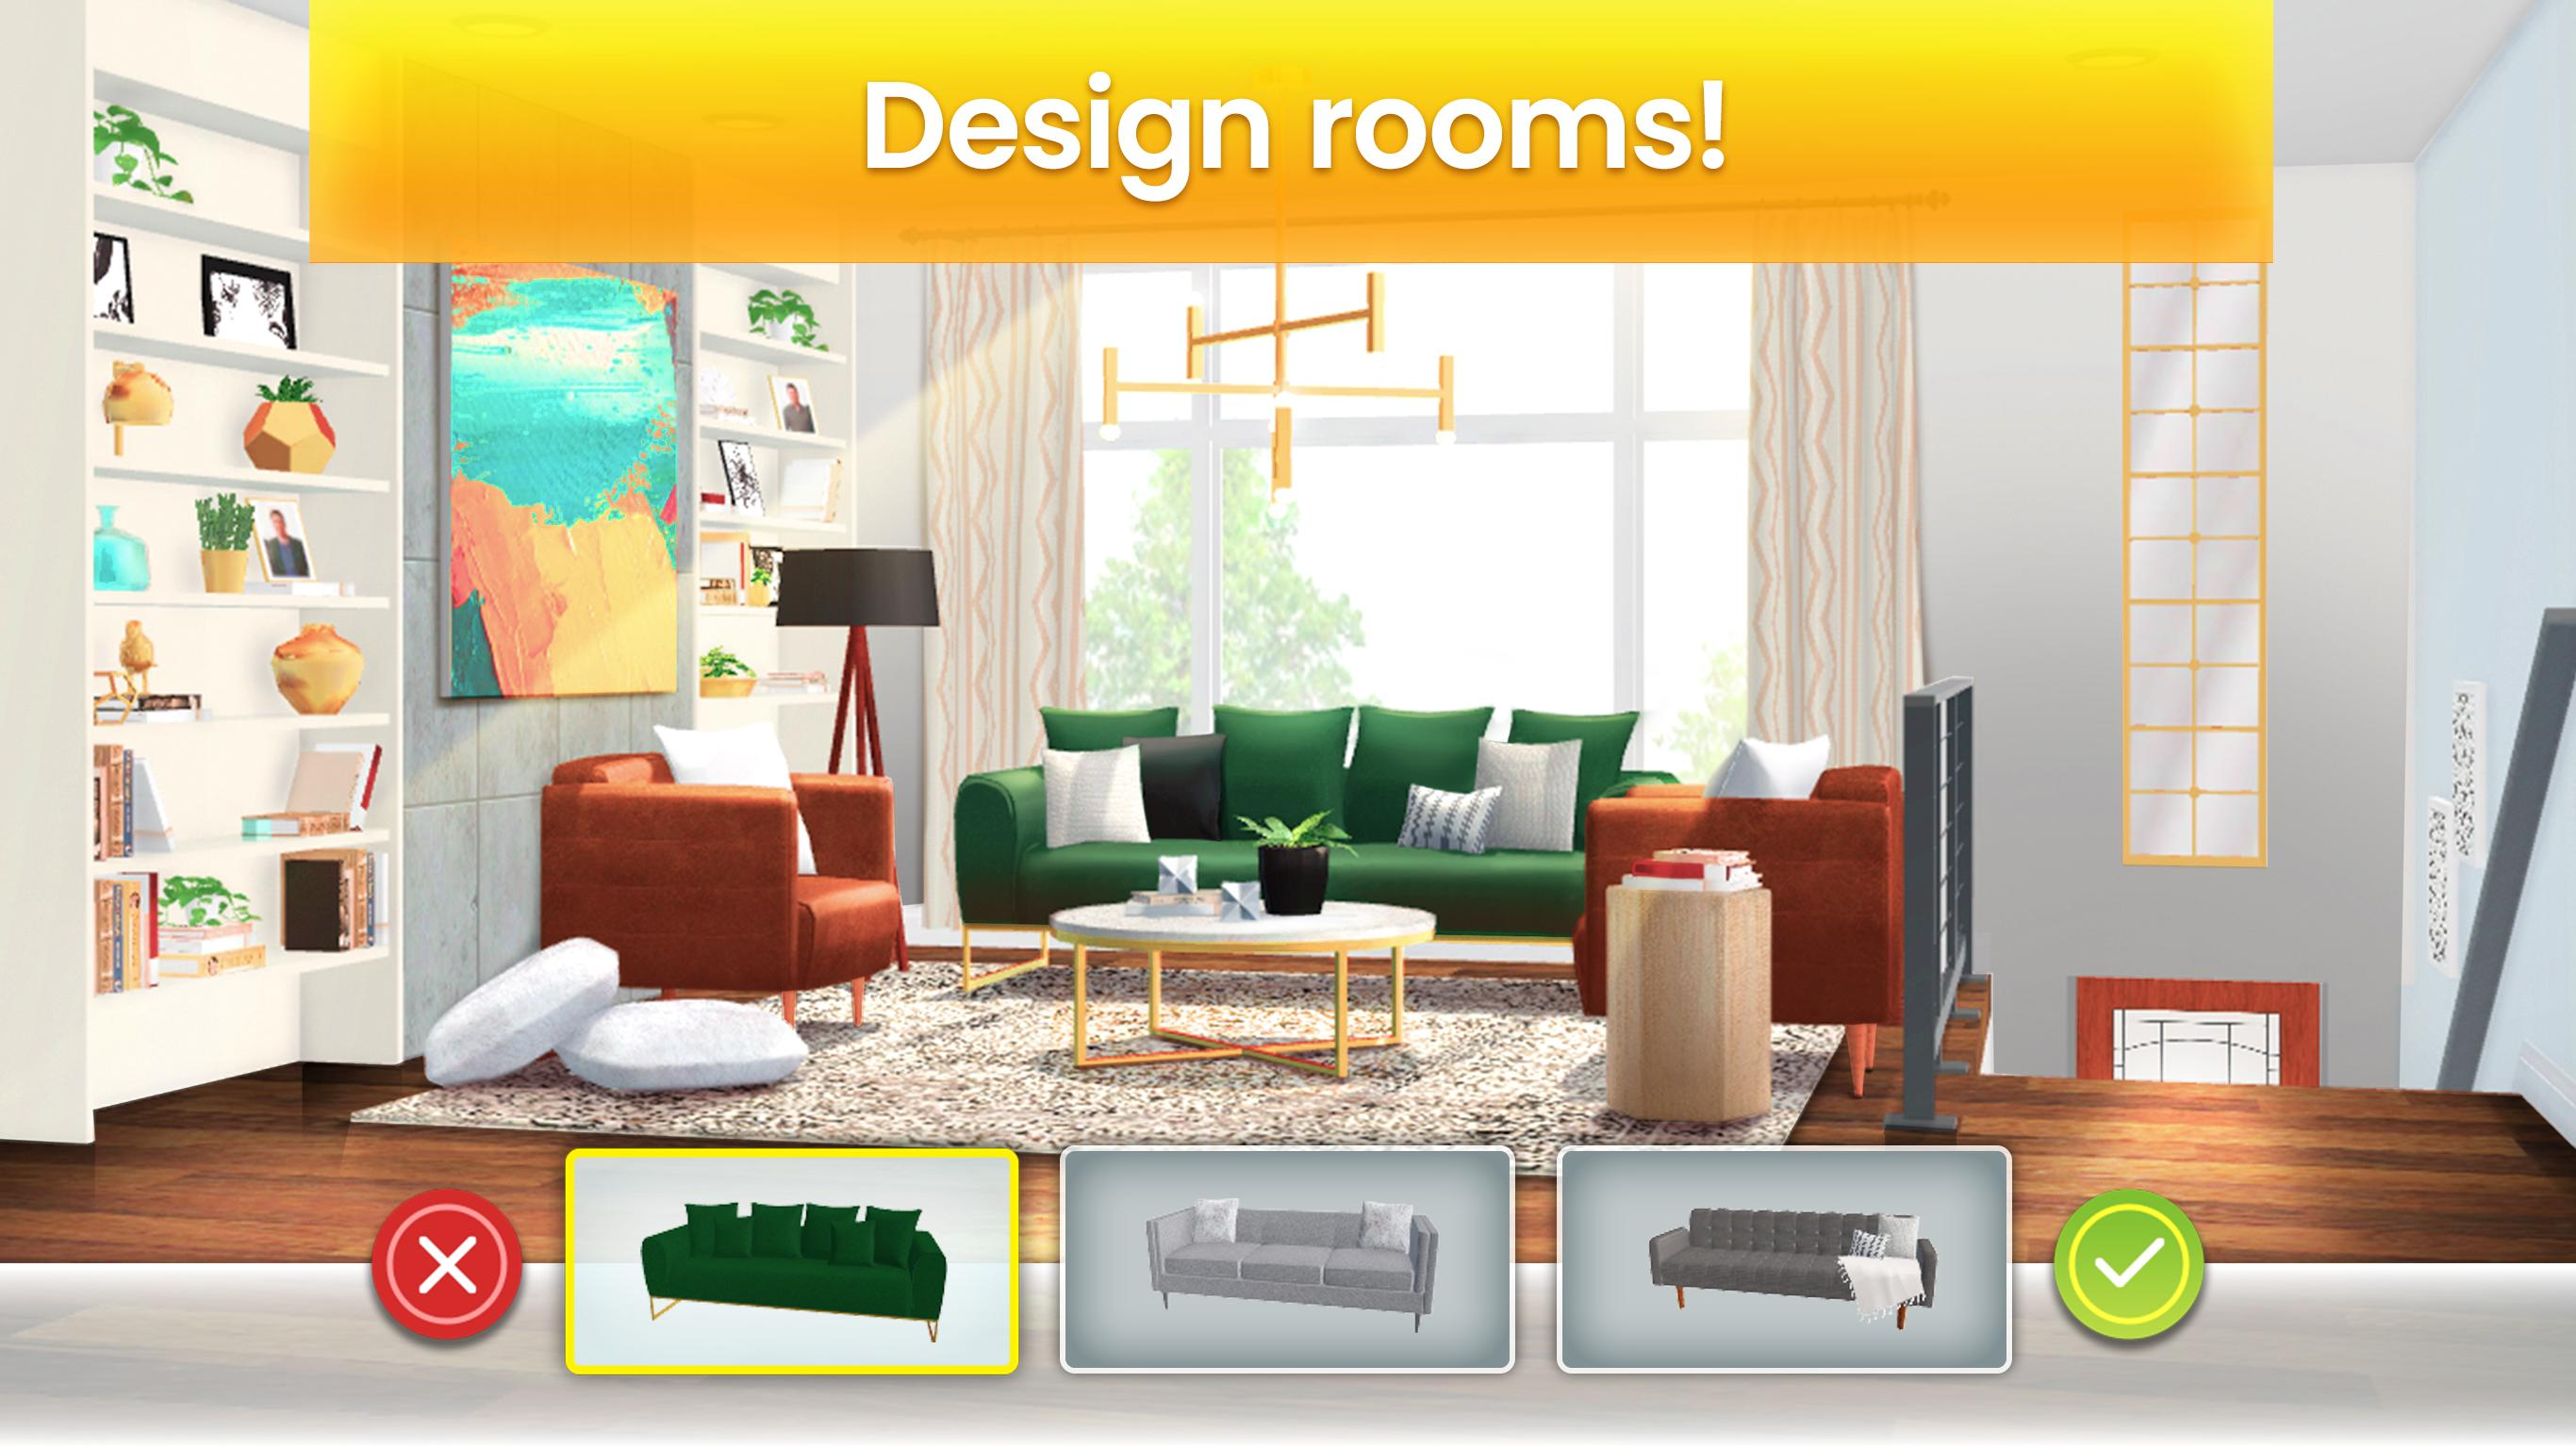 Property Brothers for Android - APK Download